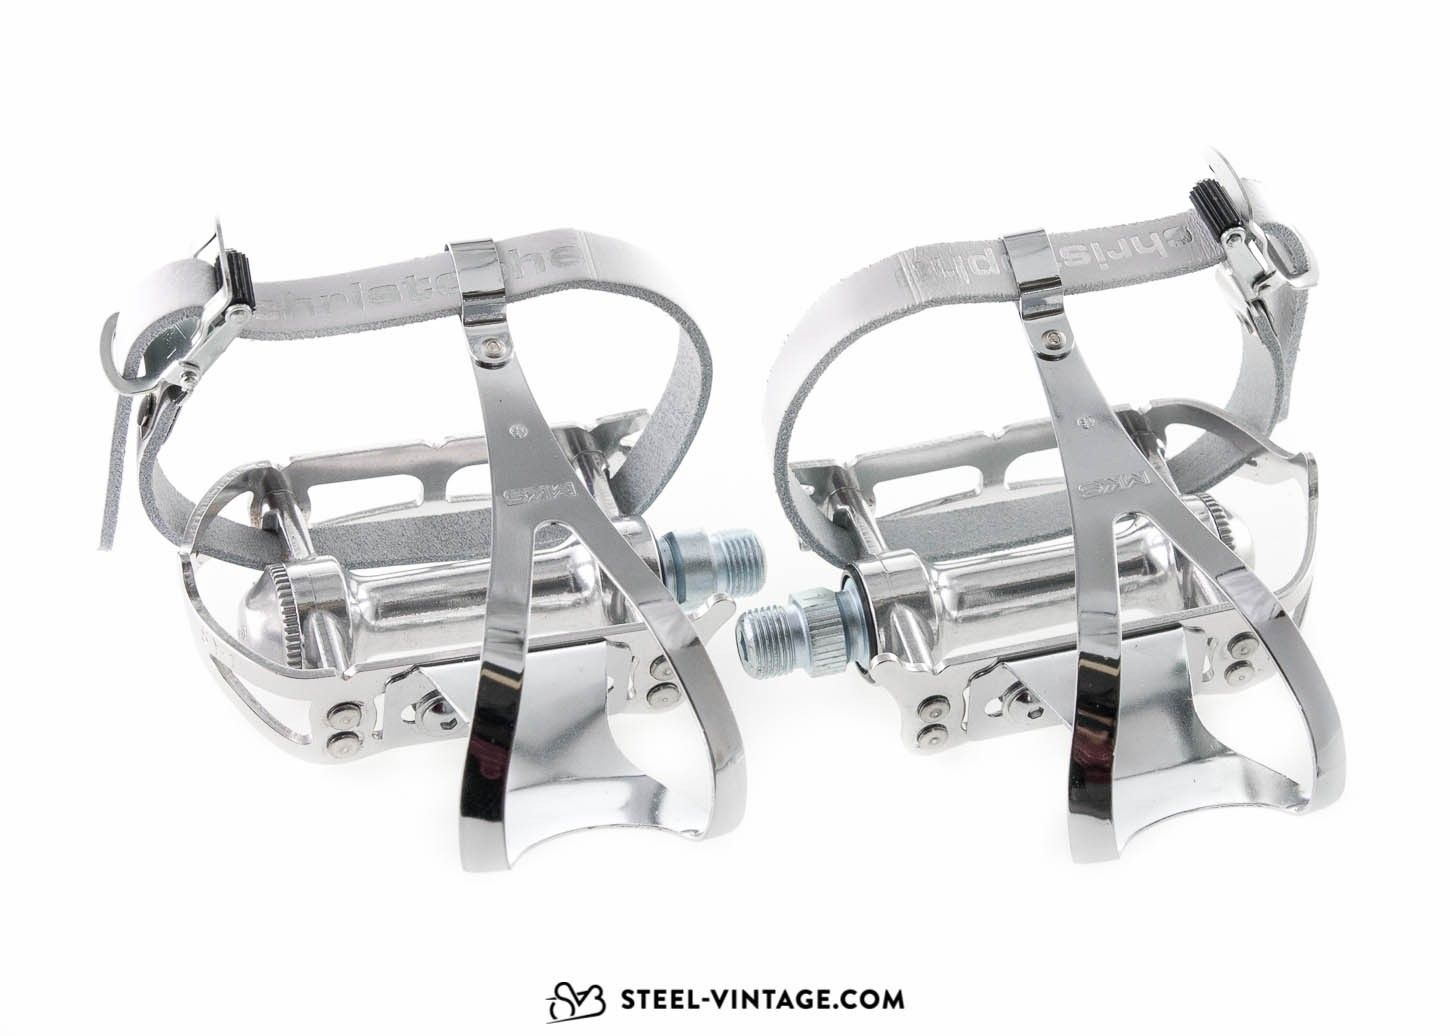 Steel Vintage Bikes Mks Sylvan Road Pedals With Toe Clips And